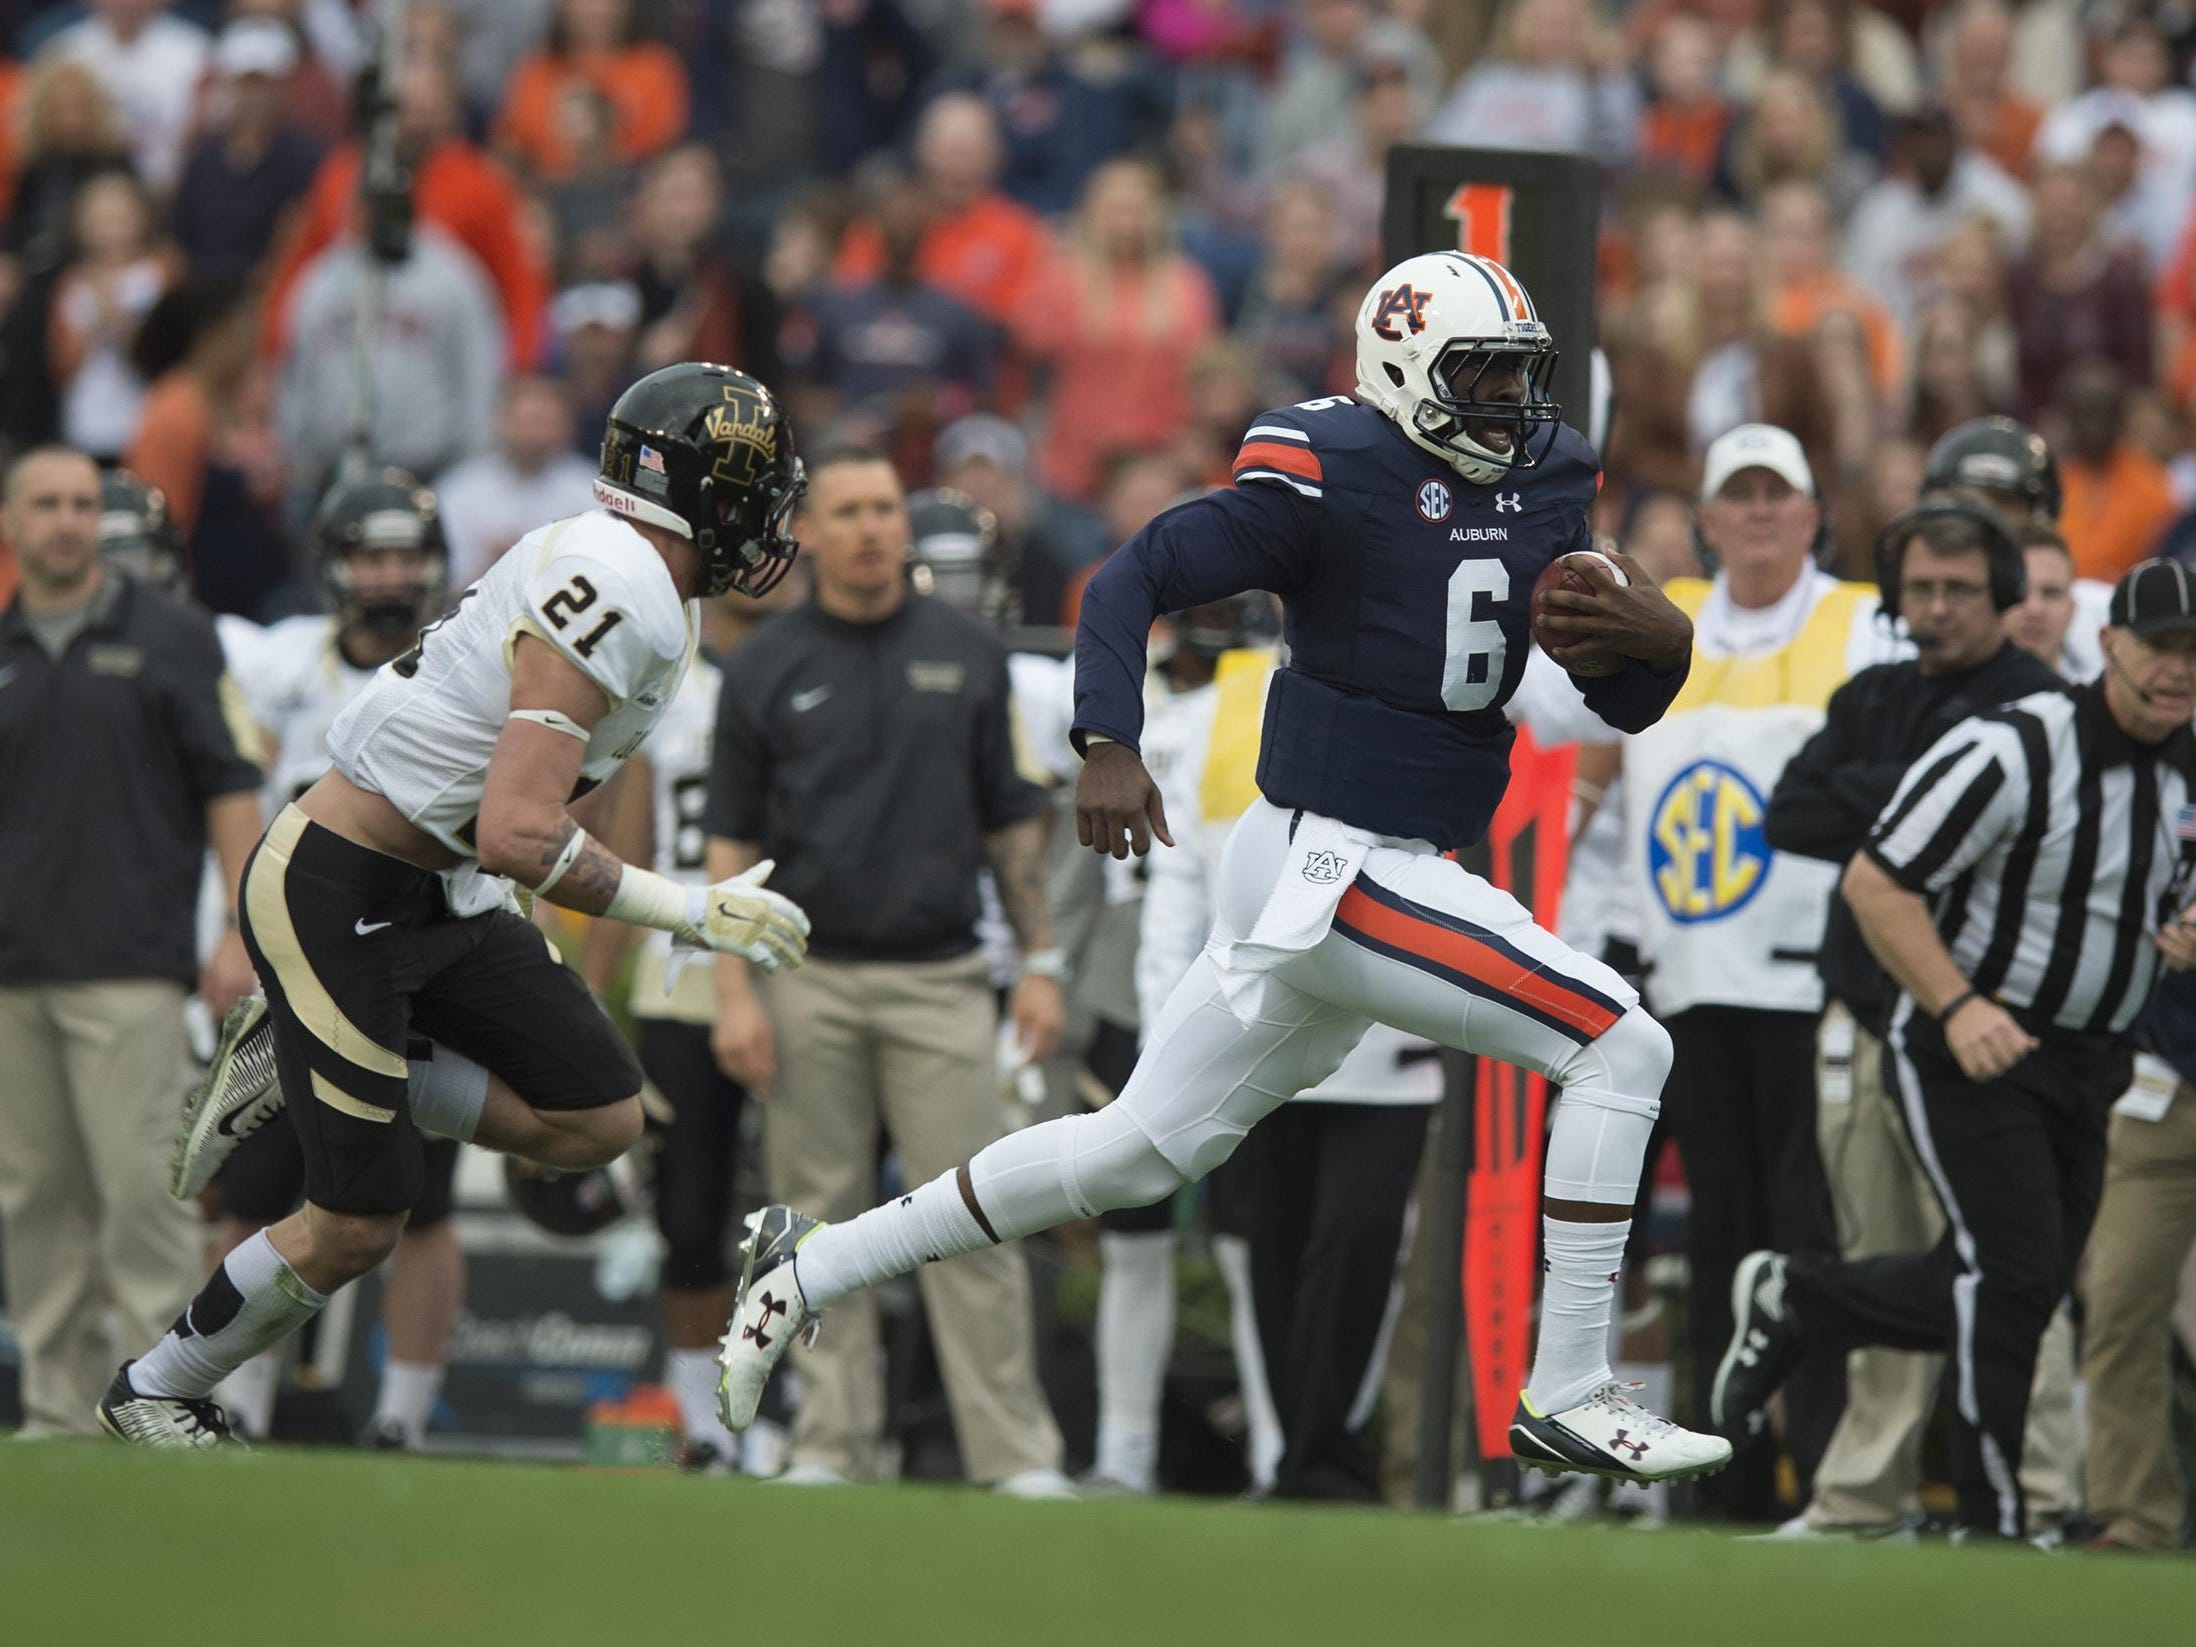 Auburn Tigers quarterback Jeremy Johnson (6) runs downfield as Idaho defensive back Jordan Grabski (21) chases him during the NCAA football game between Auburn and Idaho on Saturday, Nov. 21, 2015, at Jordan-Hare Stadium in Auburn, Ala. Albert Cesare / Advertiser